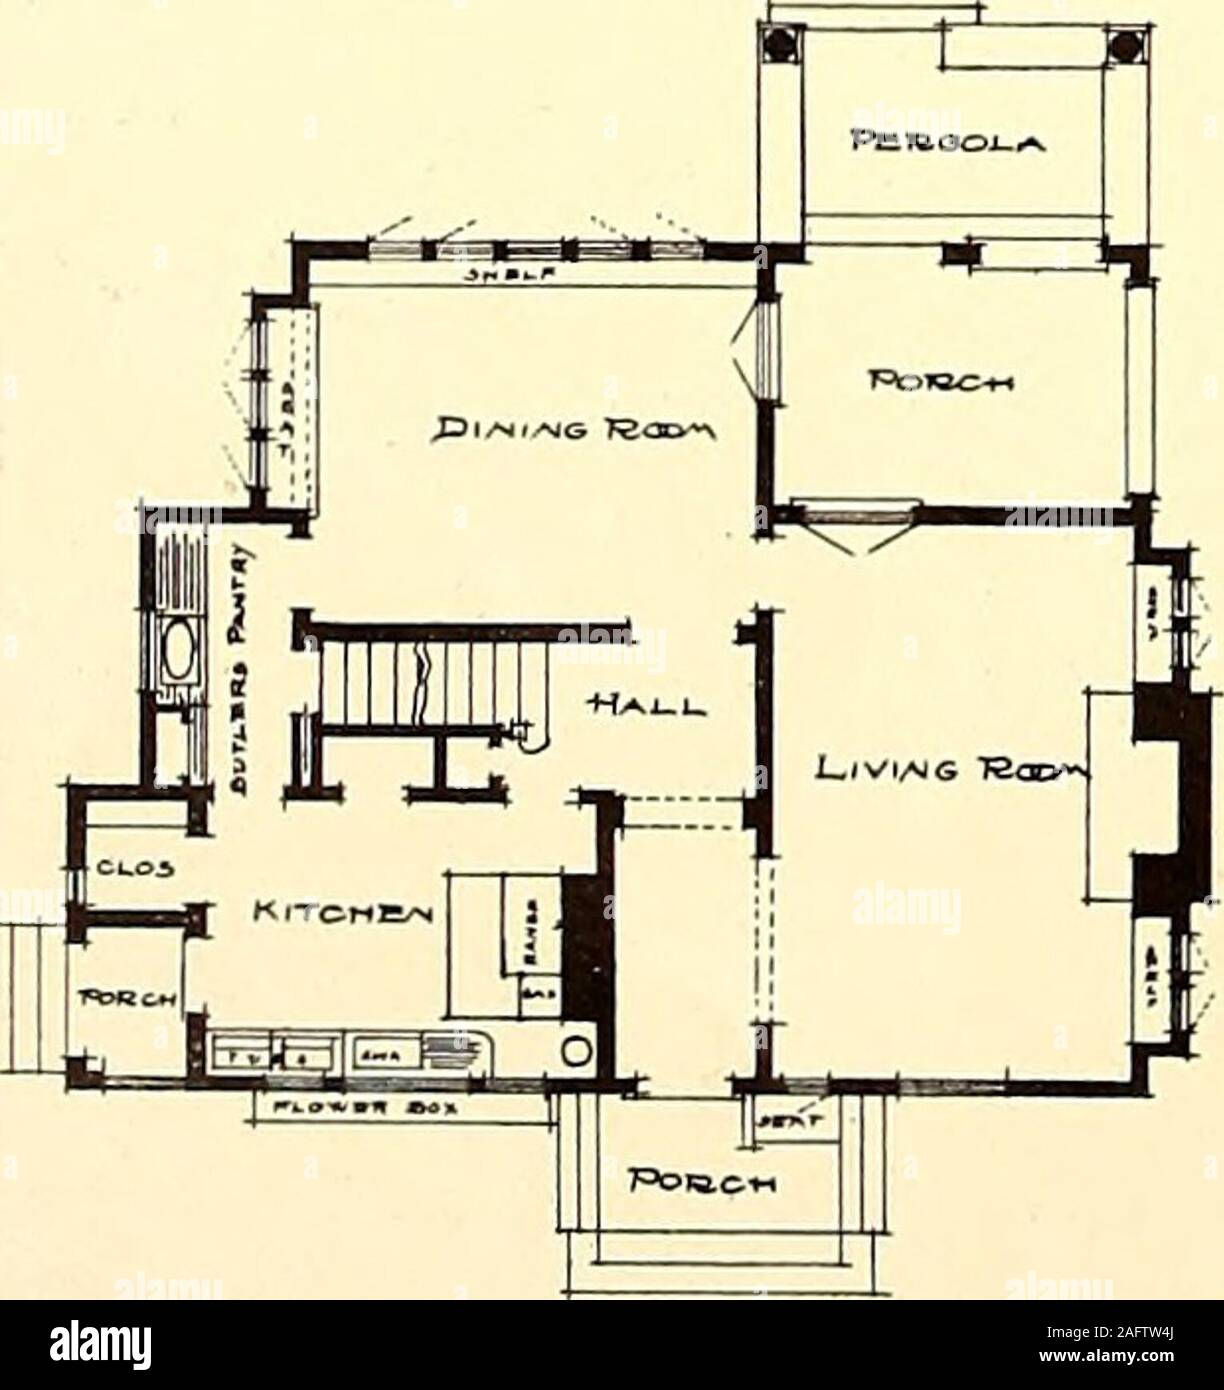 American Homes And Gardens Use Extends The Hori Zontal Lines Which Are So Essential The Floor Plan Shows An Interior Which Is Spacious And Ex Ceedingly Pleasant And Comfortable At Bridgeport Connecticut Thehome Of